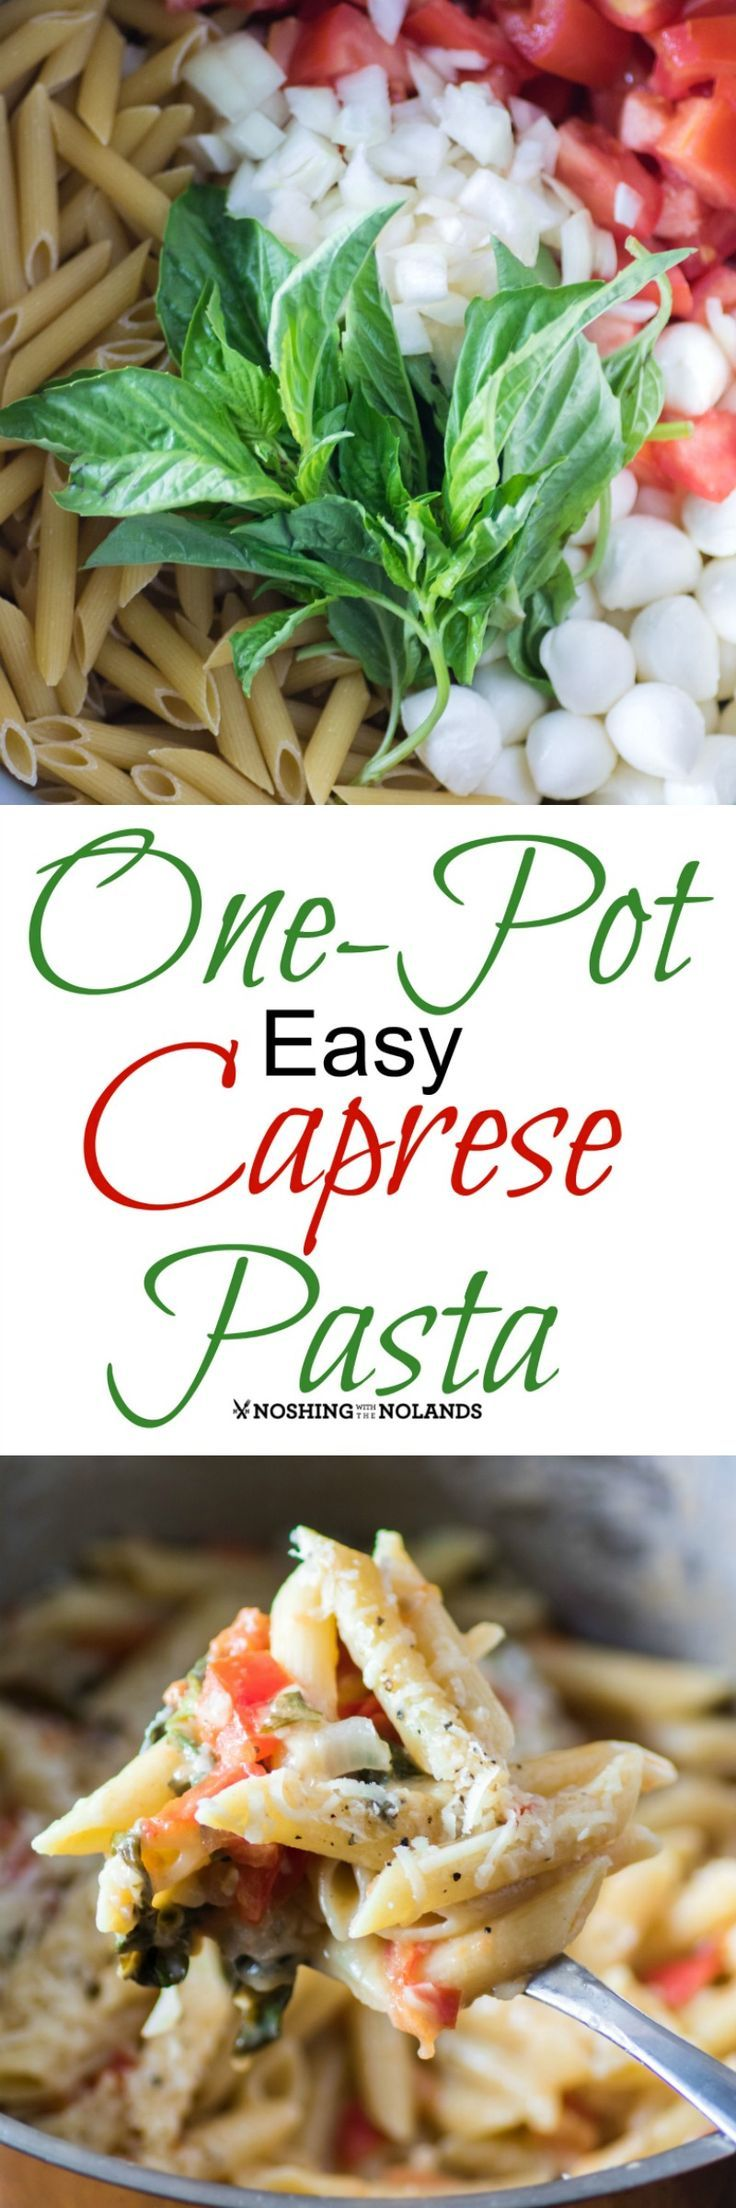 One-Pot Easy Caprese Pasta by Noshing With The Nolands is a quick weeknight meal that comes together beautifully with delicious ingredients and is on your table in less than 30 minutes!